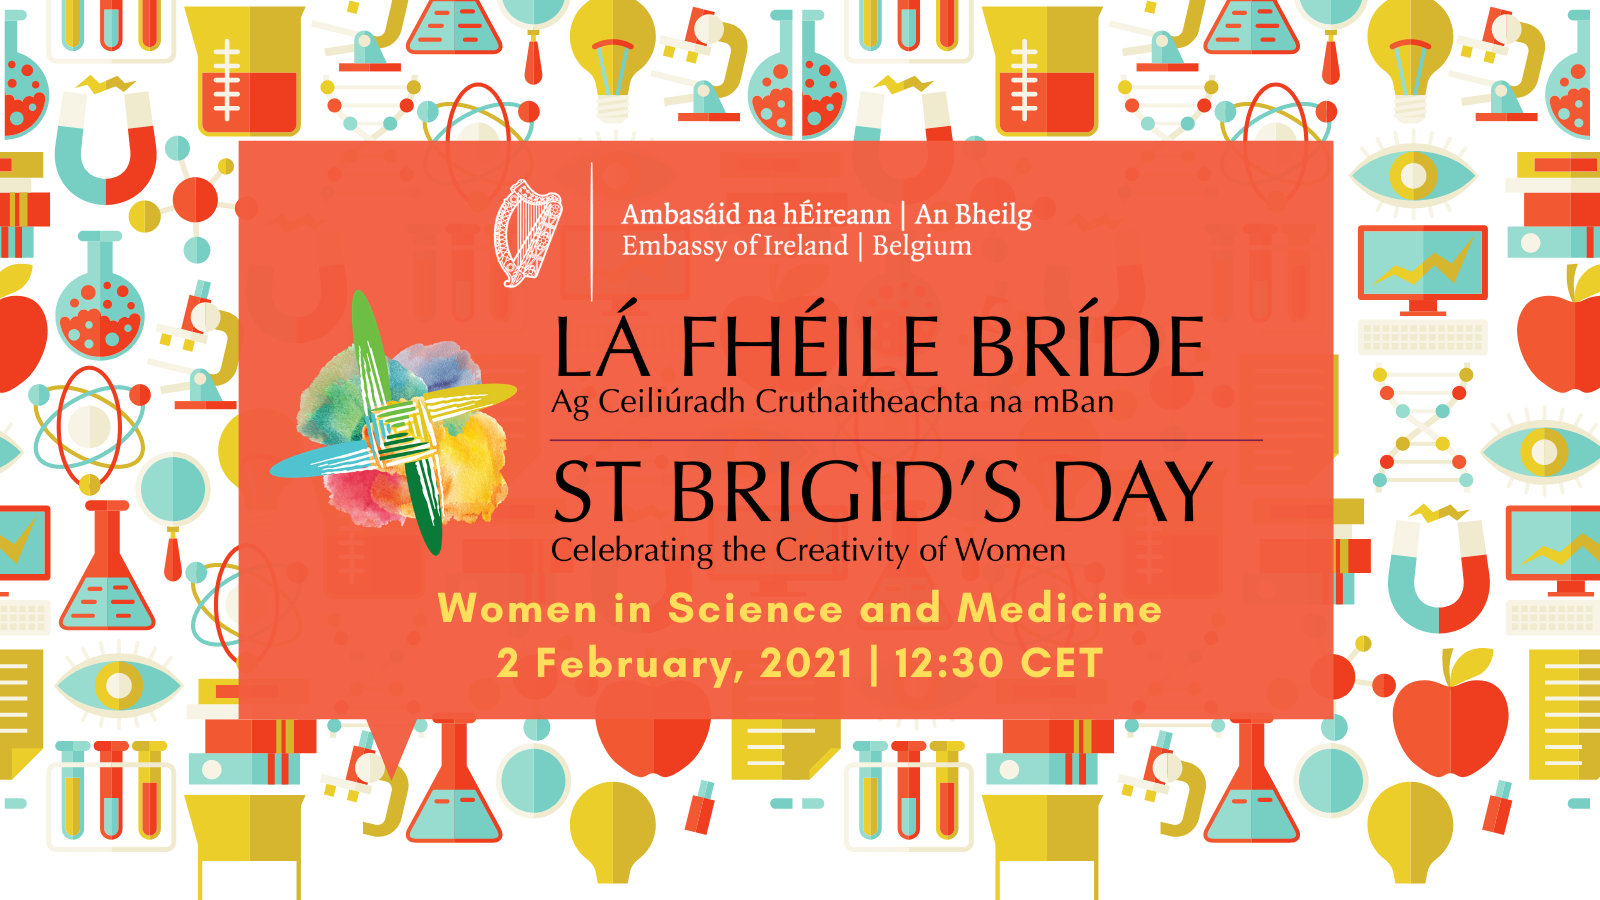 Embassy of Ireland, Belgium St. Brigid's Day 2021